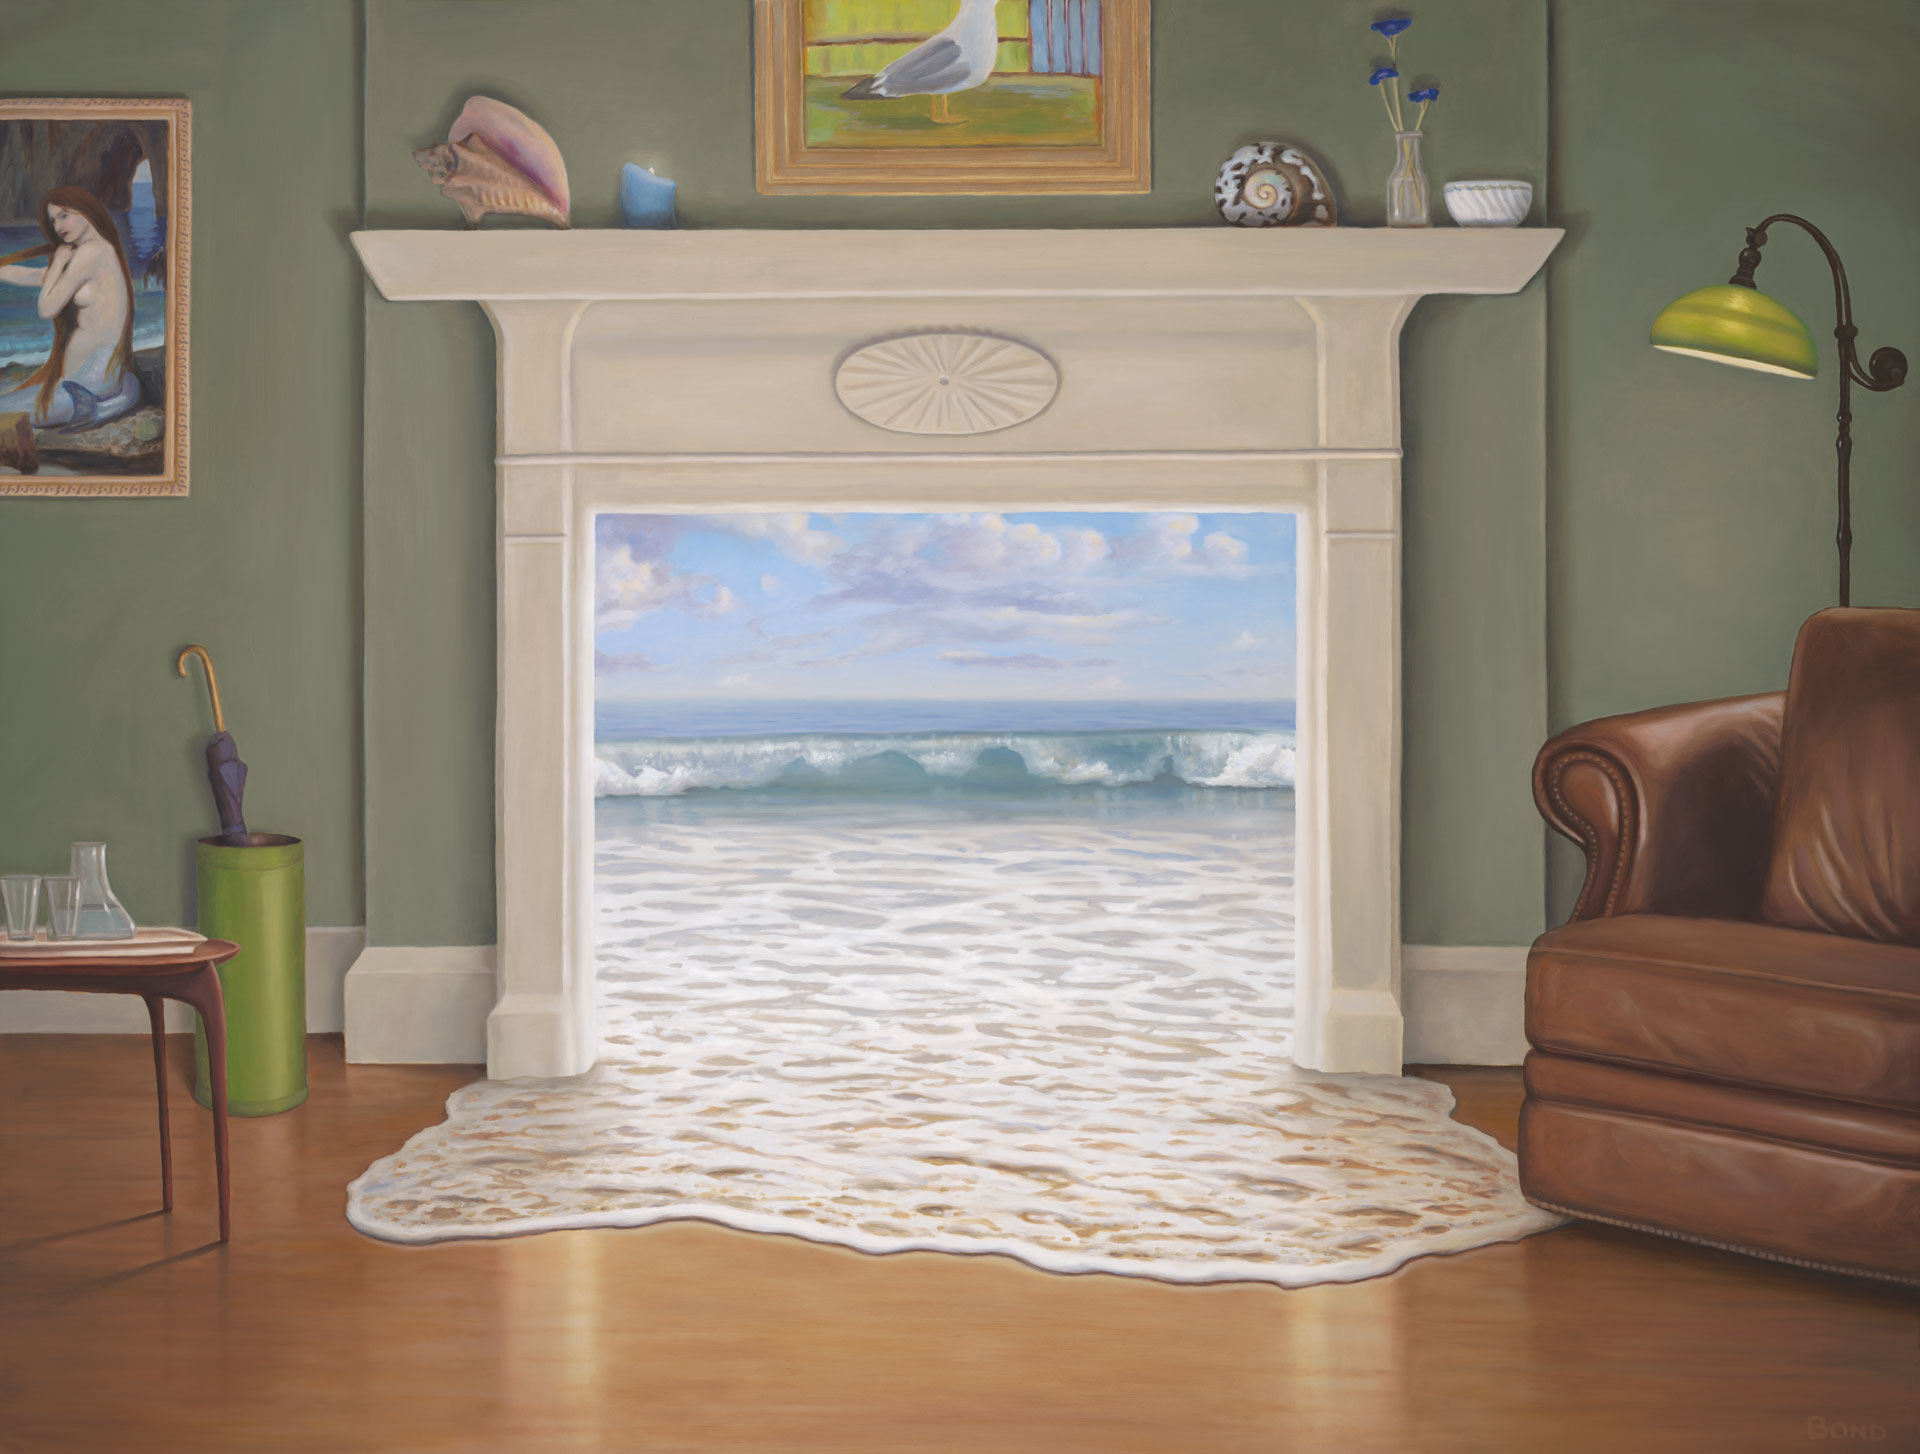 The Waterhouse, painting of the ocean coming through the fireplace into the living room, dreaming, ocean, art with waves surfing, sea, illusion, John William Waterhouse, mermaid, seagull, leather chair, living room, atr about beach living, manifest, shell, umbrella, foam, wood floor, lamp, trompe l'oeil, soulful uplifting inspirational art, soul stirring illusion art, romantic art,  surrealism, surreal art, dreamlike imagery, fanciful art, fantasy art, dreamscape visual, metaphysical art, spiritual painting, metaphysical painting, spiritual art, whimsical art, whimsy art, dream art, fantastic realism art, limited edition giclee, signed art print, fine art reproduction, original magic realism oil painting by Paul Bond